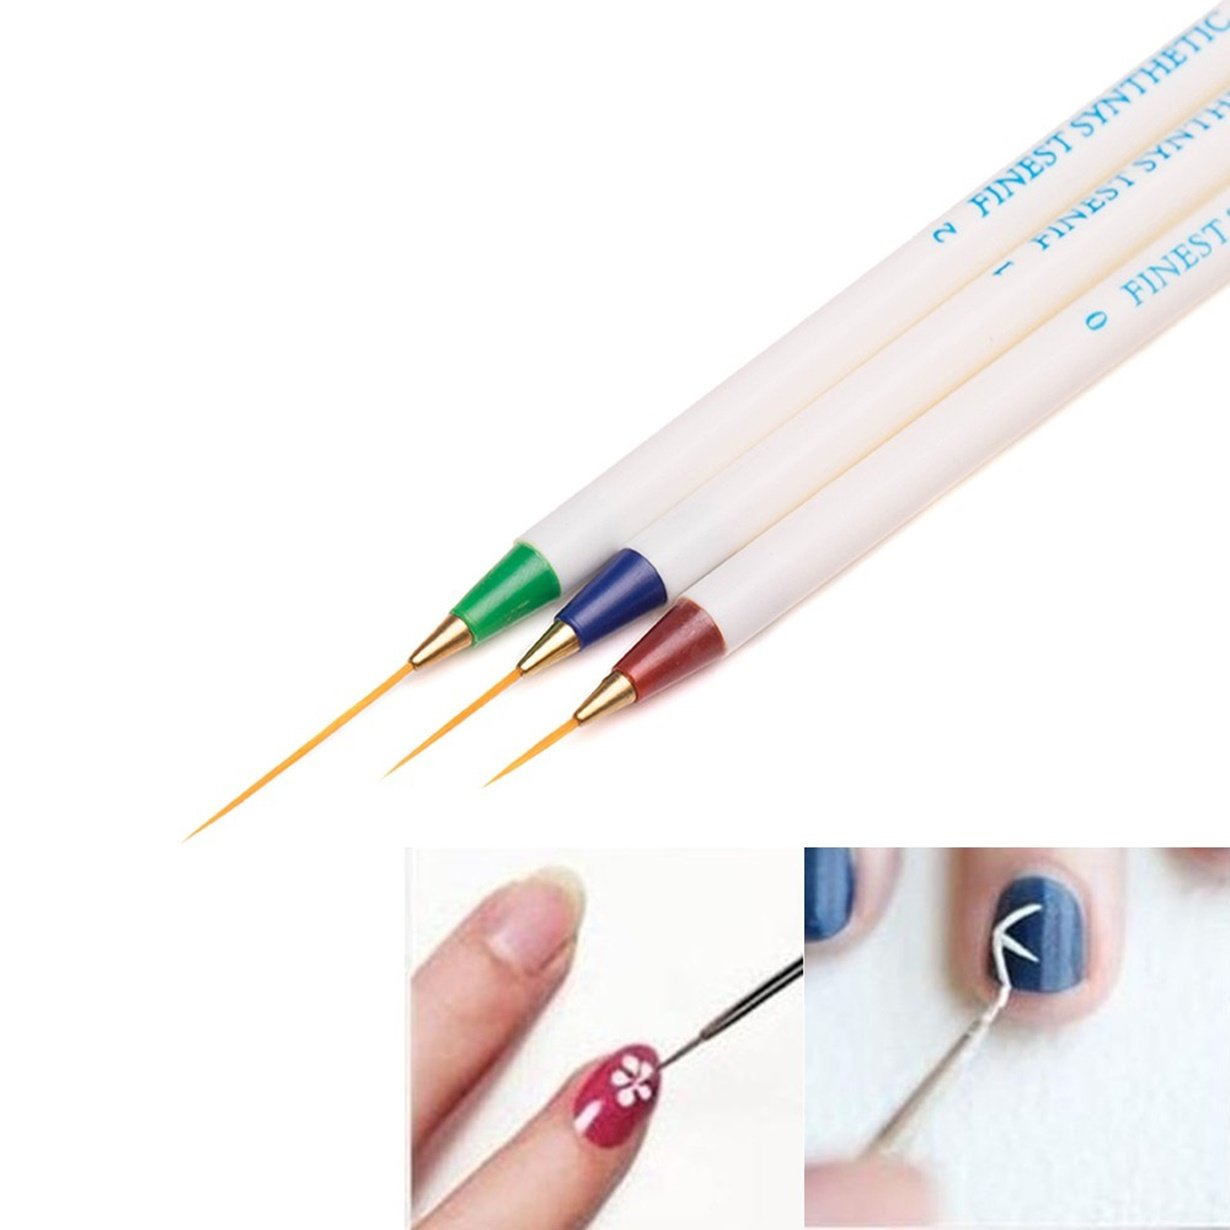 3 Pcs Dotting Painting Drawing Design Brush Pen Nails Brushes Make up Tools for Women Girls Professional Soft Nail Art Artificial Tool Kits Great Popular Toenail Pads Lacquer Clean Remover Kit